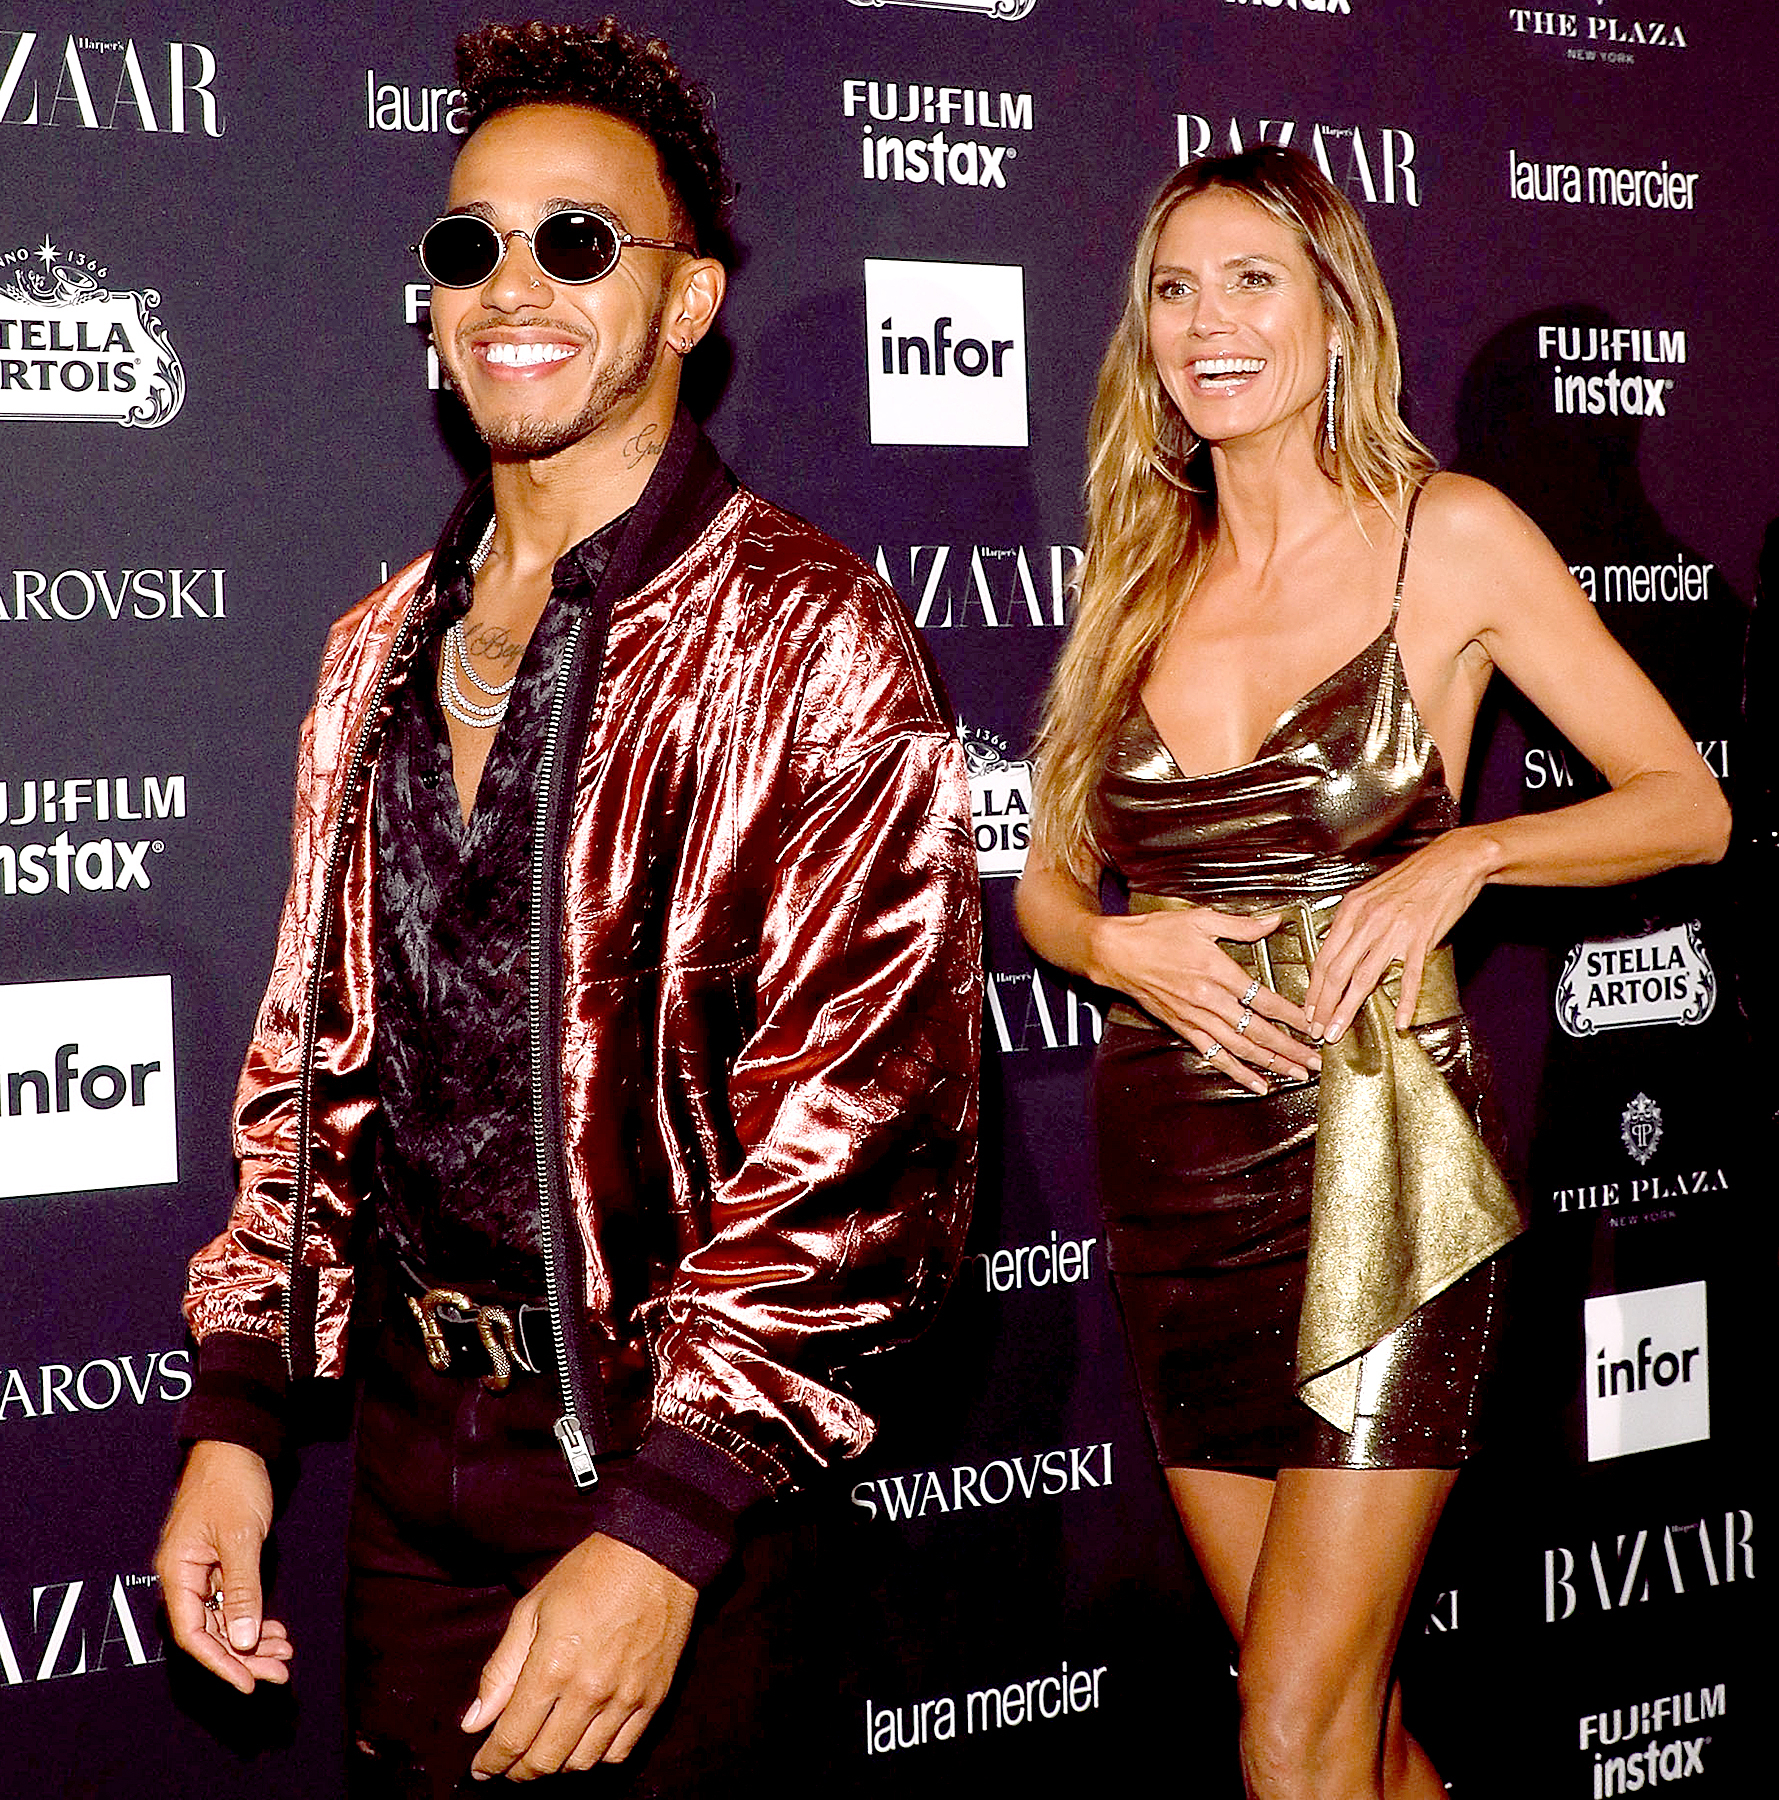 Lewis Hamilton and Heidi Klum attend the 2017 Harper ICONS party at The Plaza Hotel on September 8, 2017 in New York City.